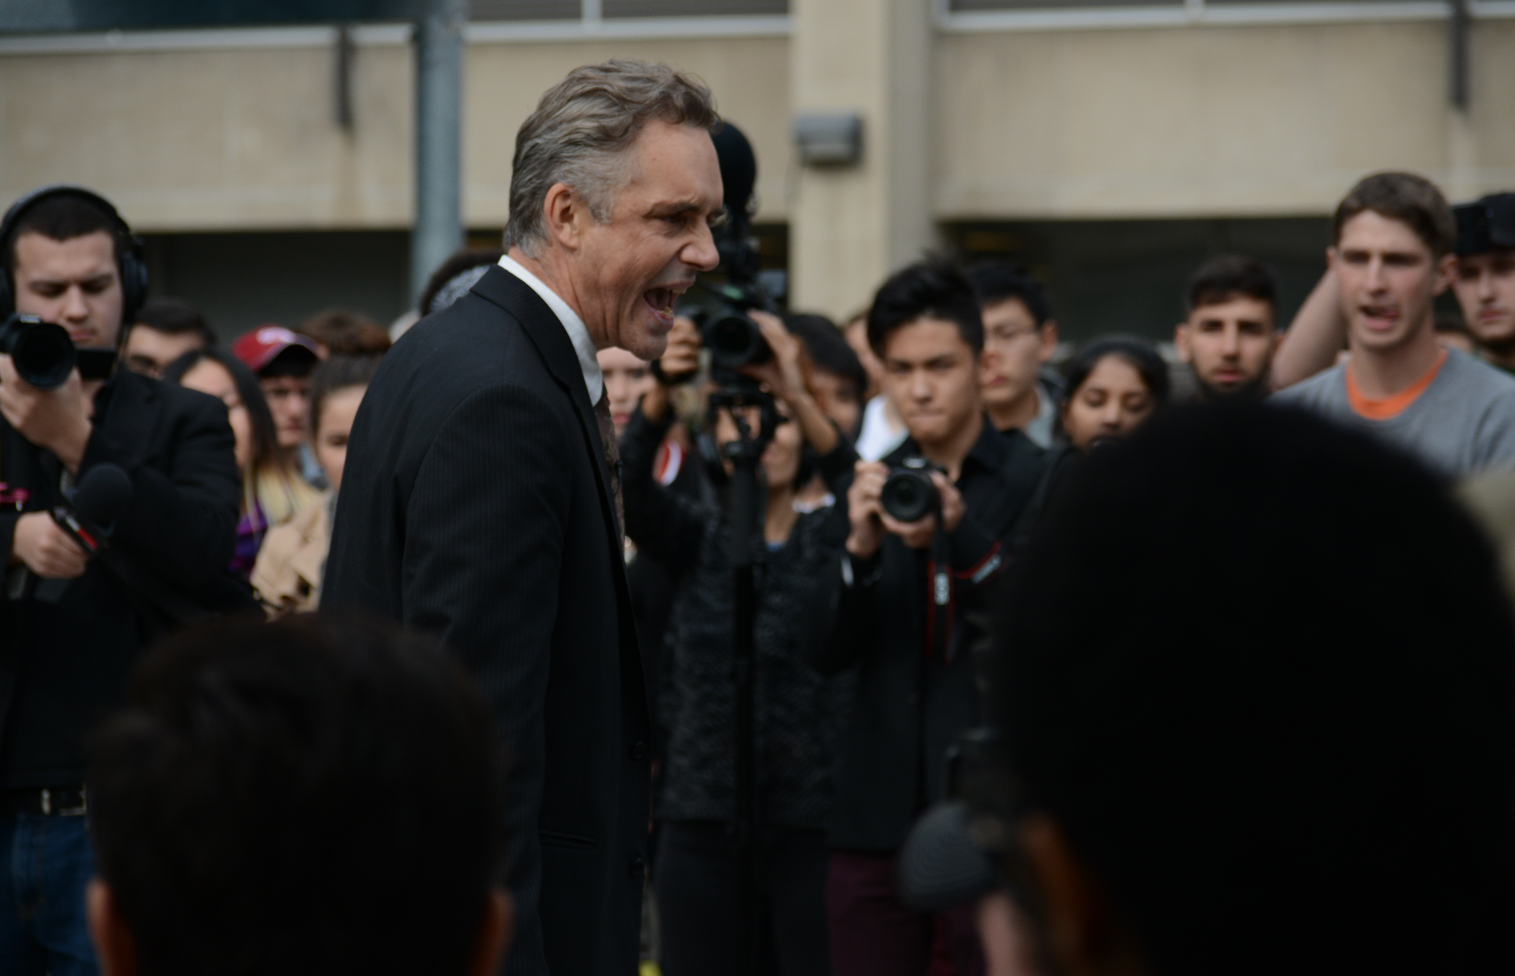 Peterson speaks at an October rally for free speech at the University of Toronto.